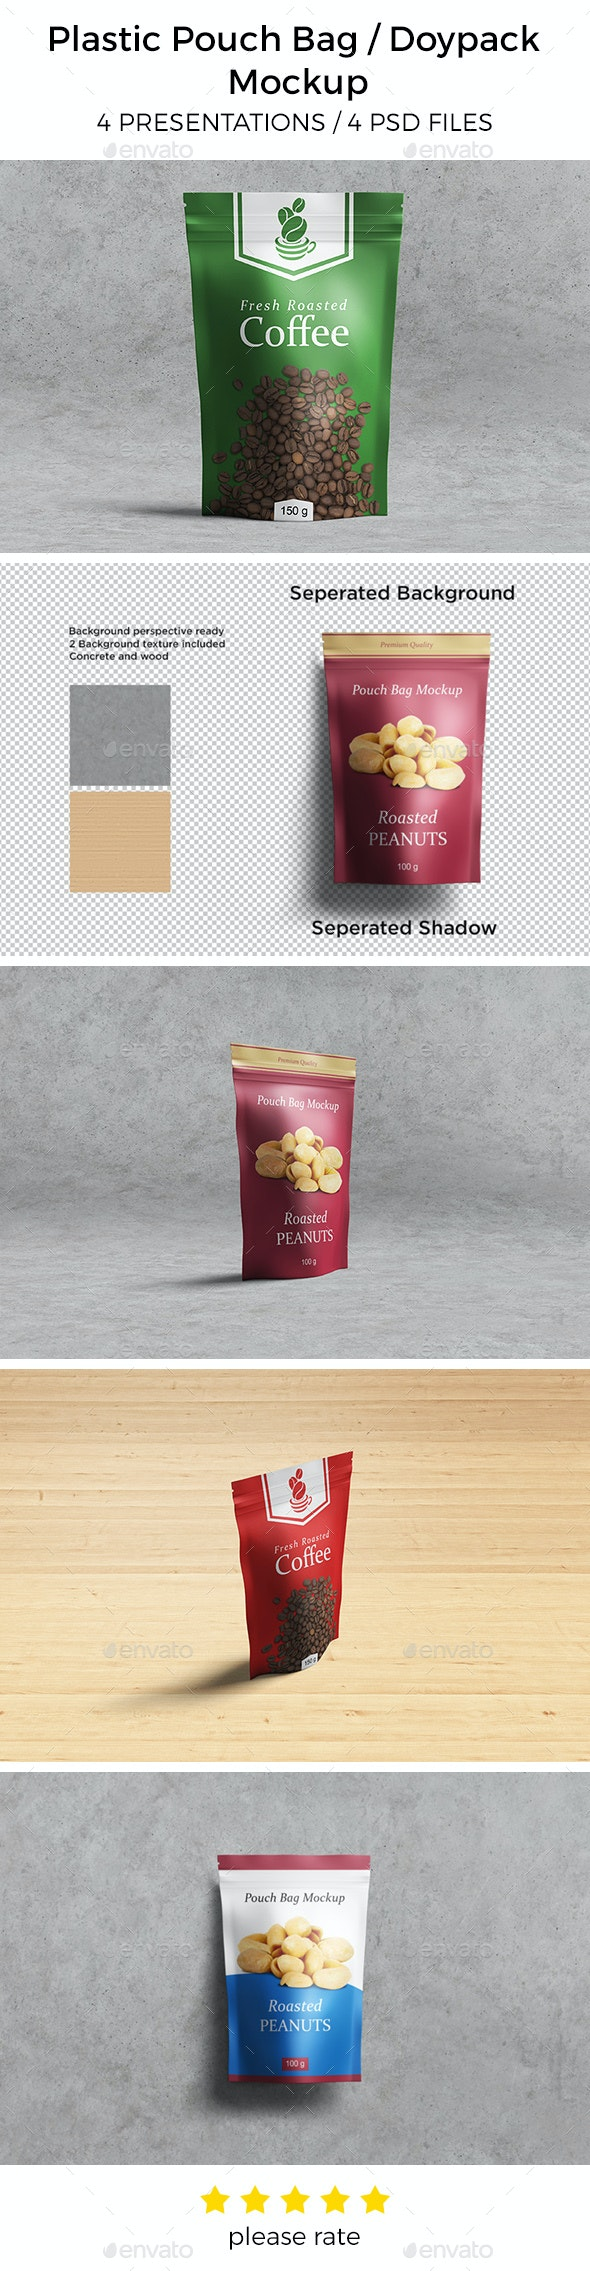 Plastic Pouch Bag / Doypack Mockup - Food and Drink Packaging